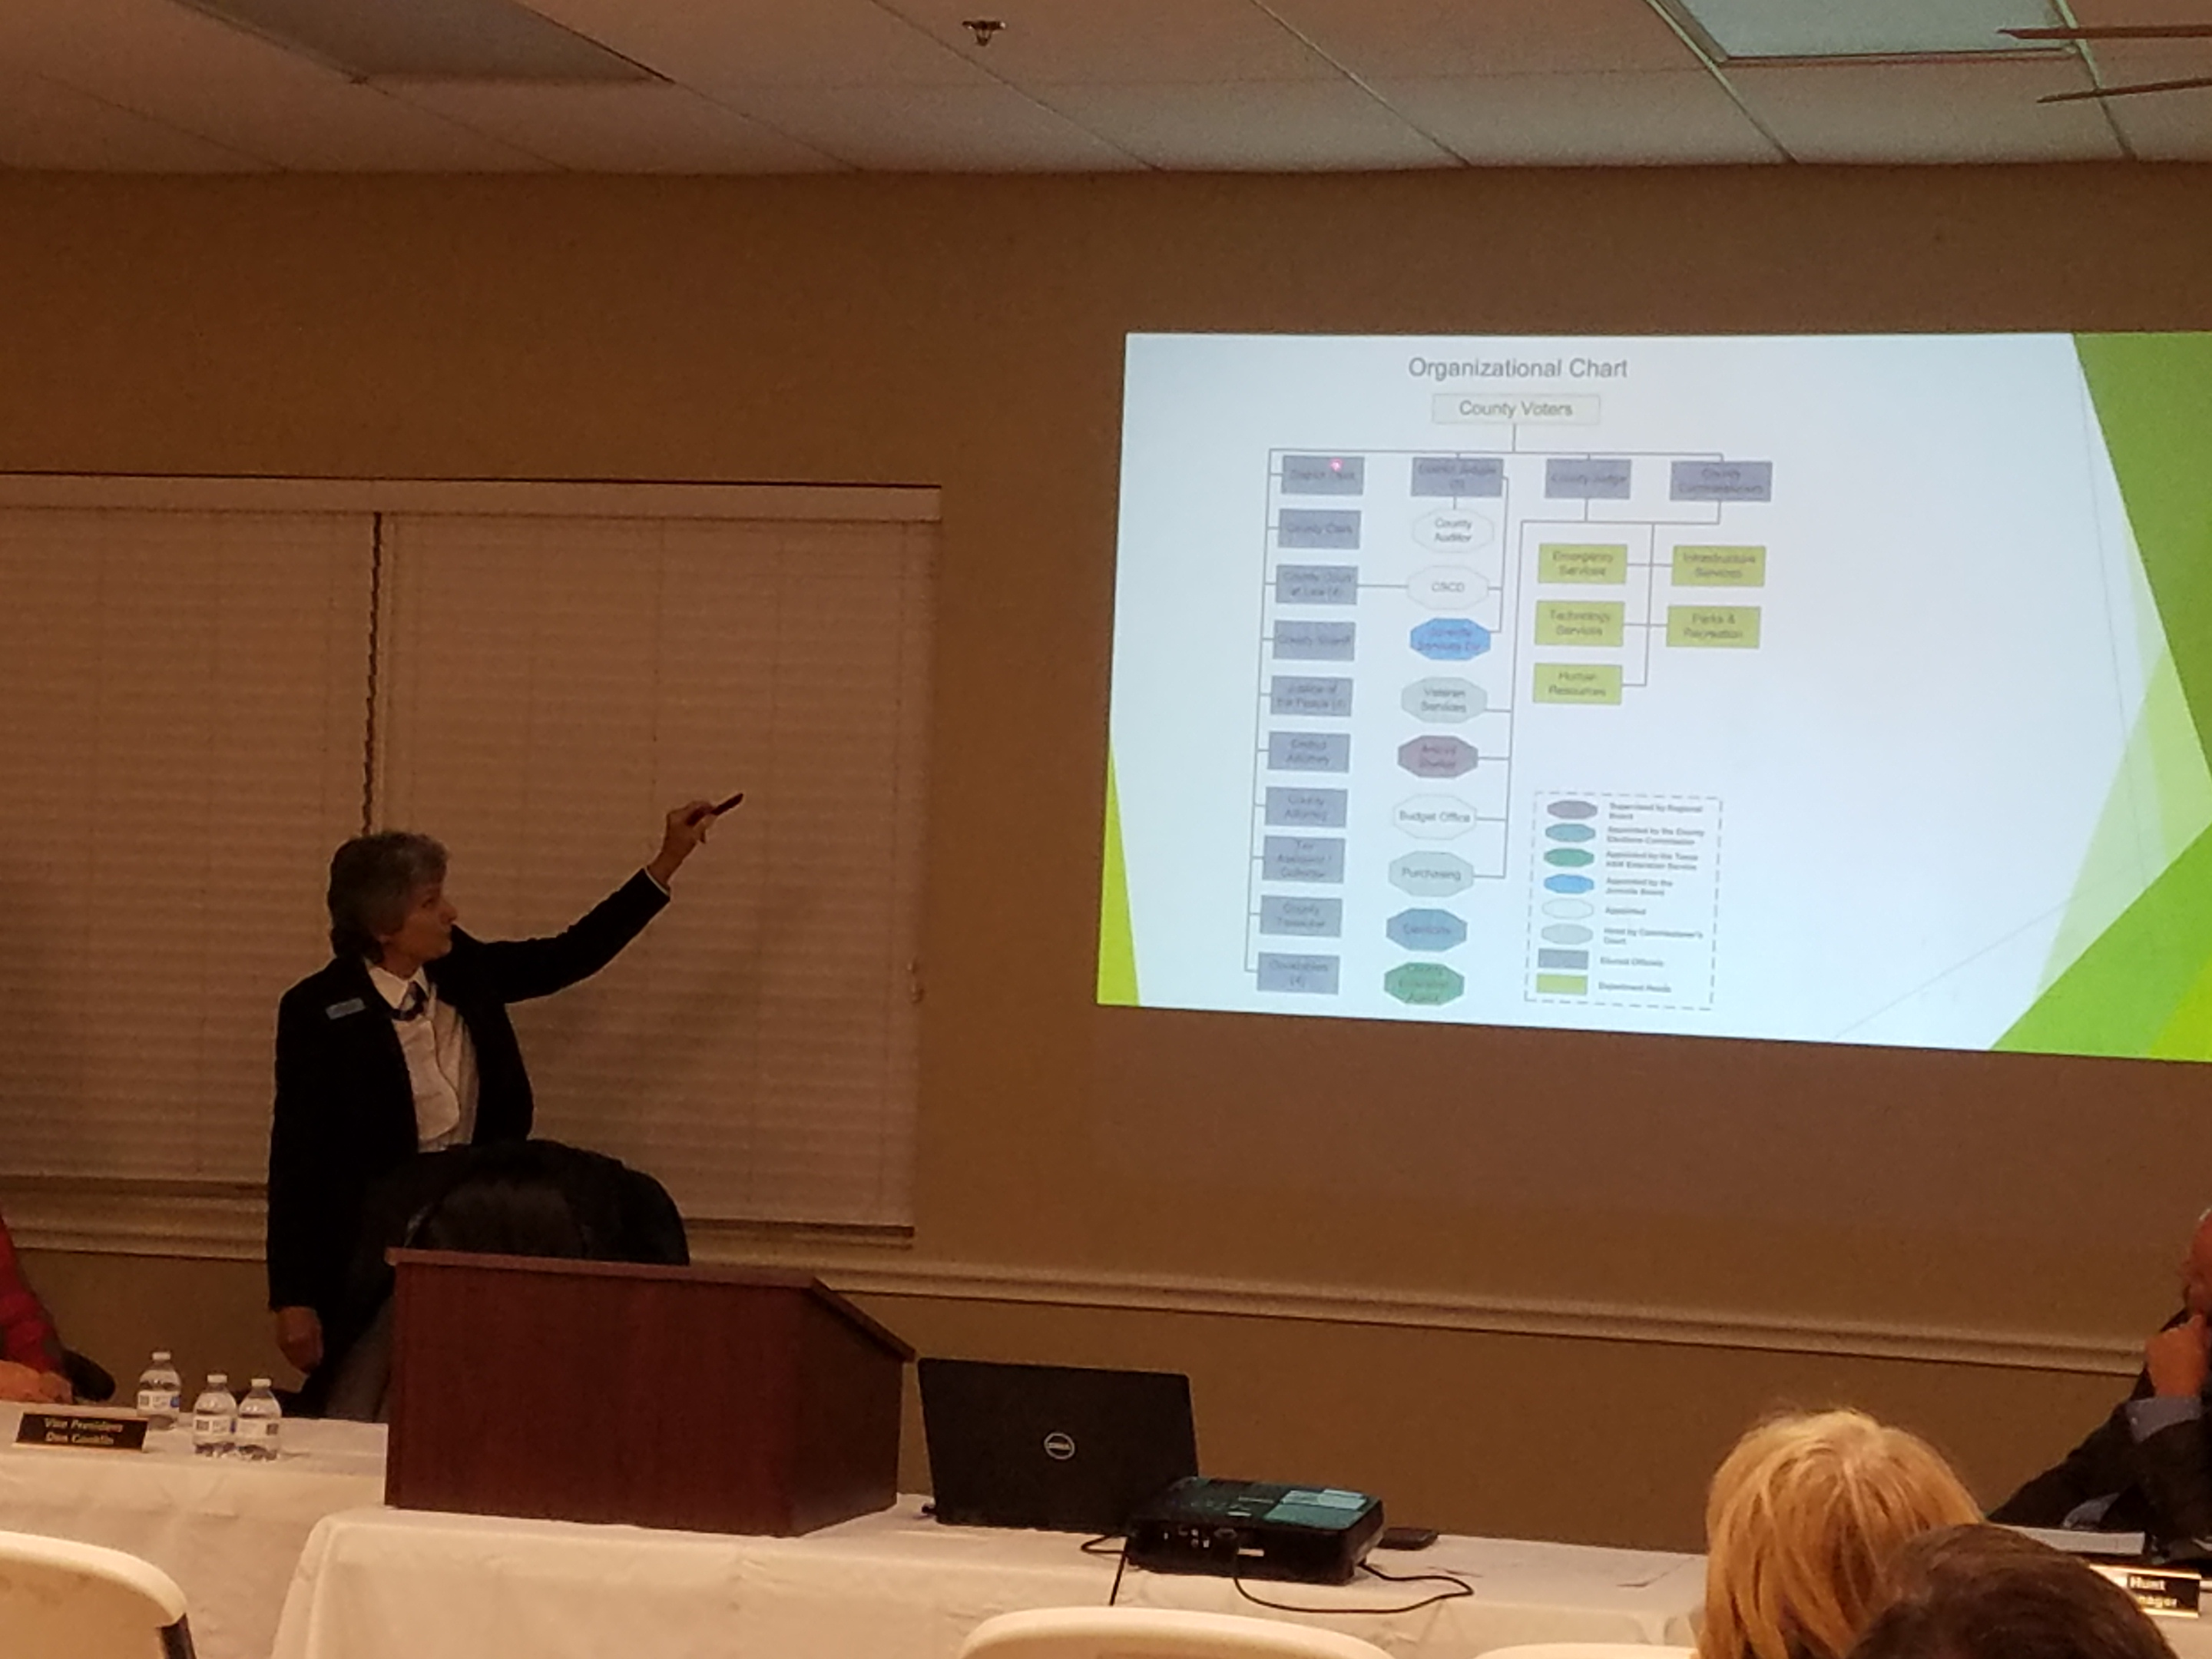 Commissioner Cook explains the county organizational chart projected on a screen.